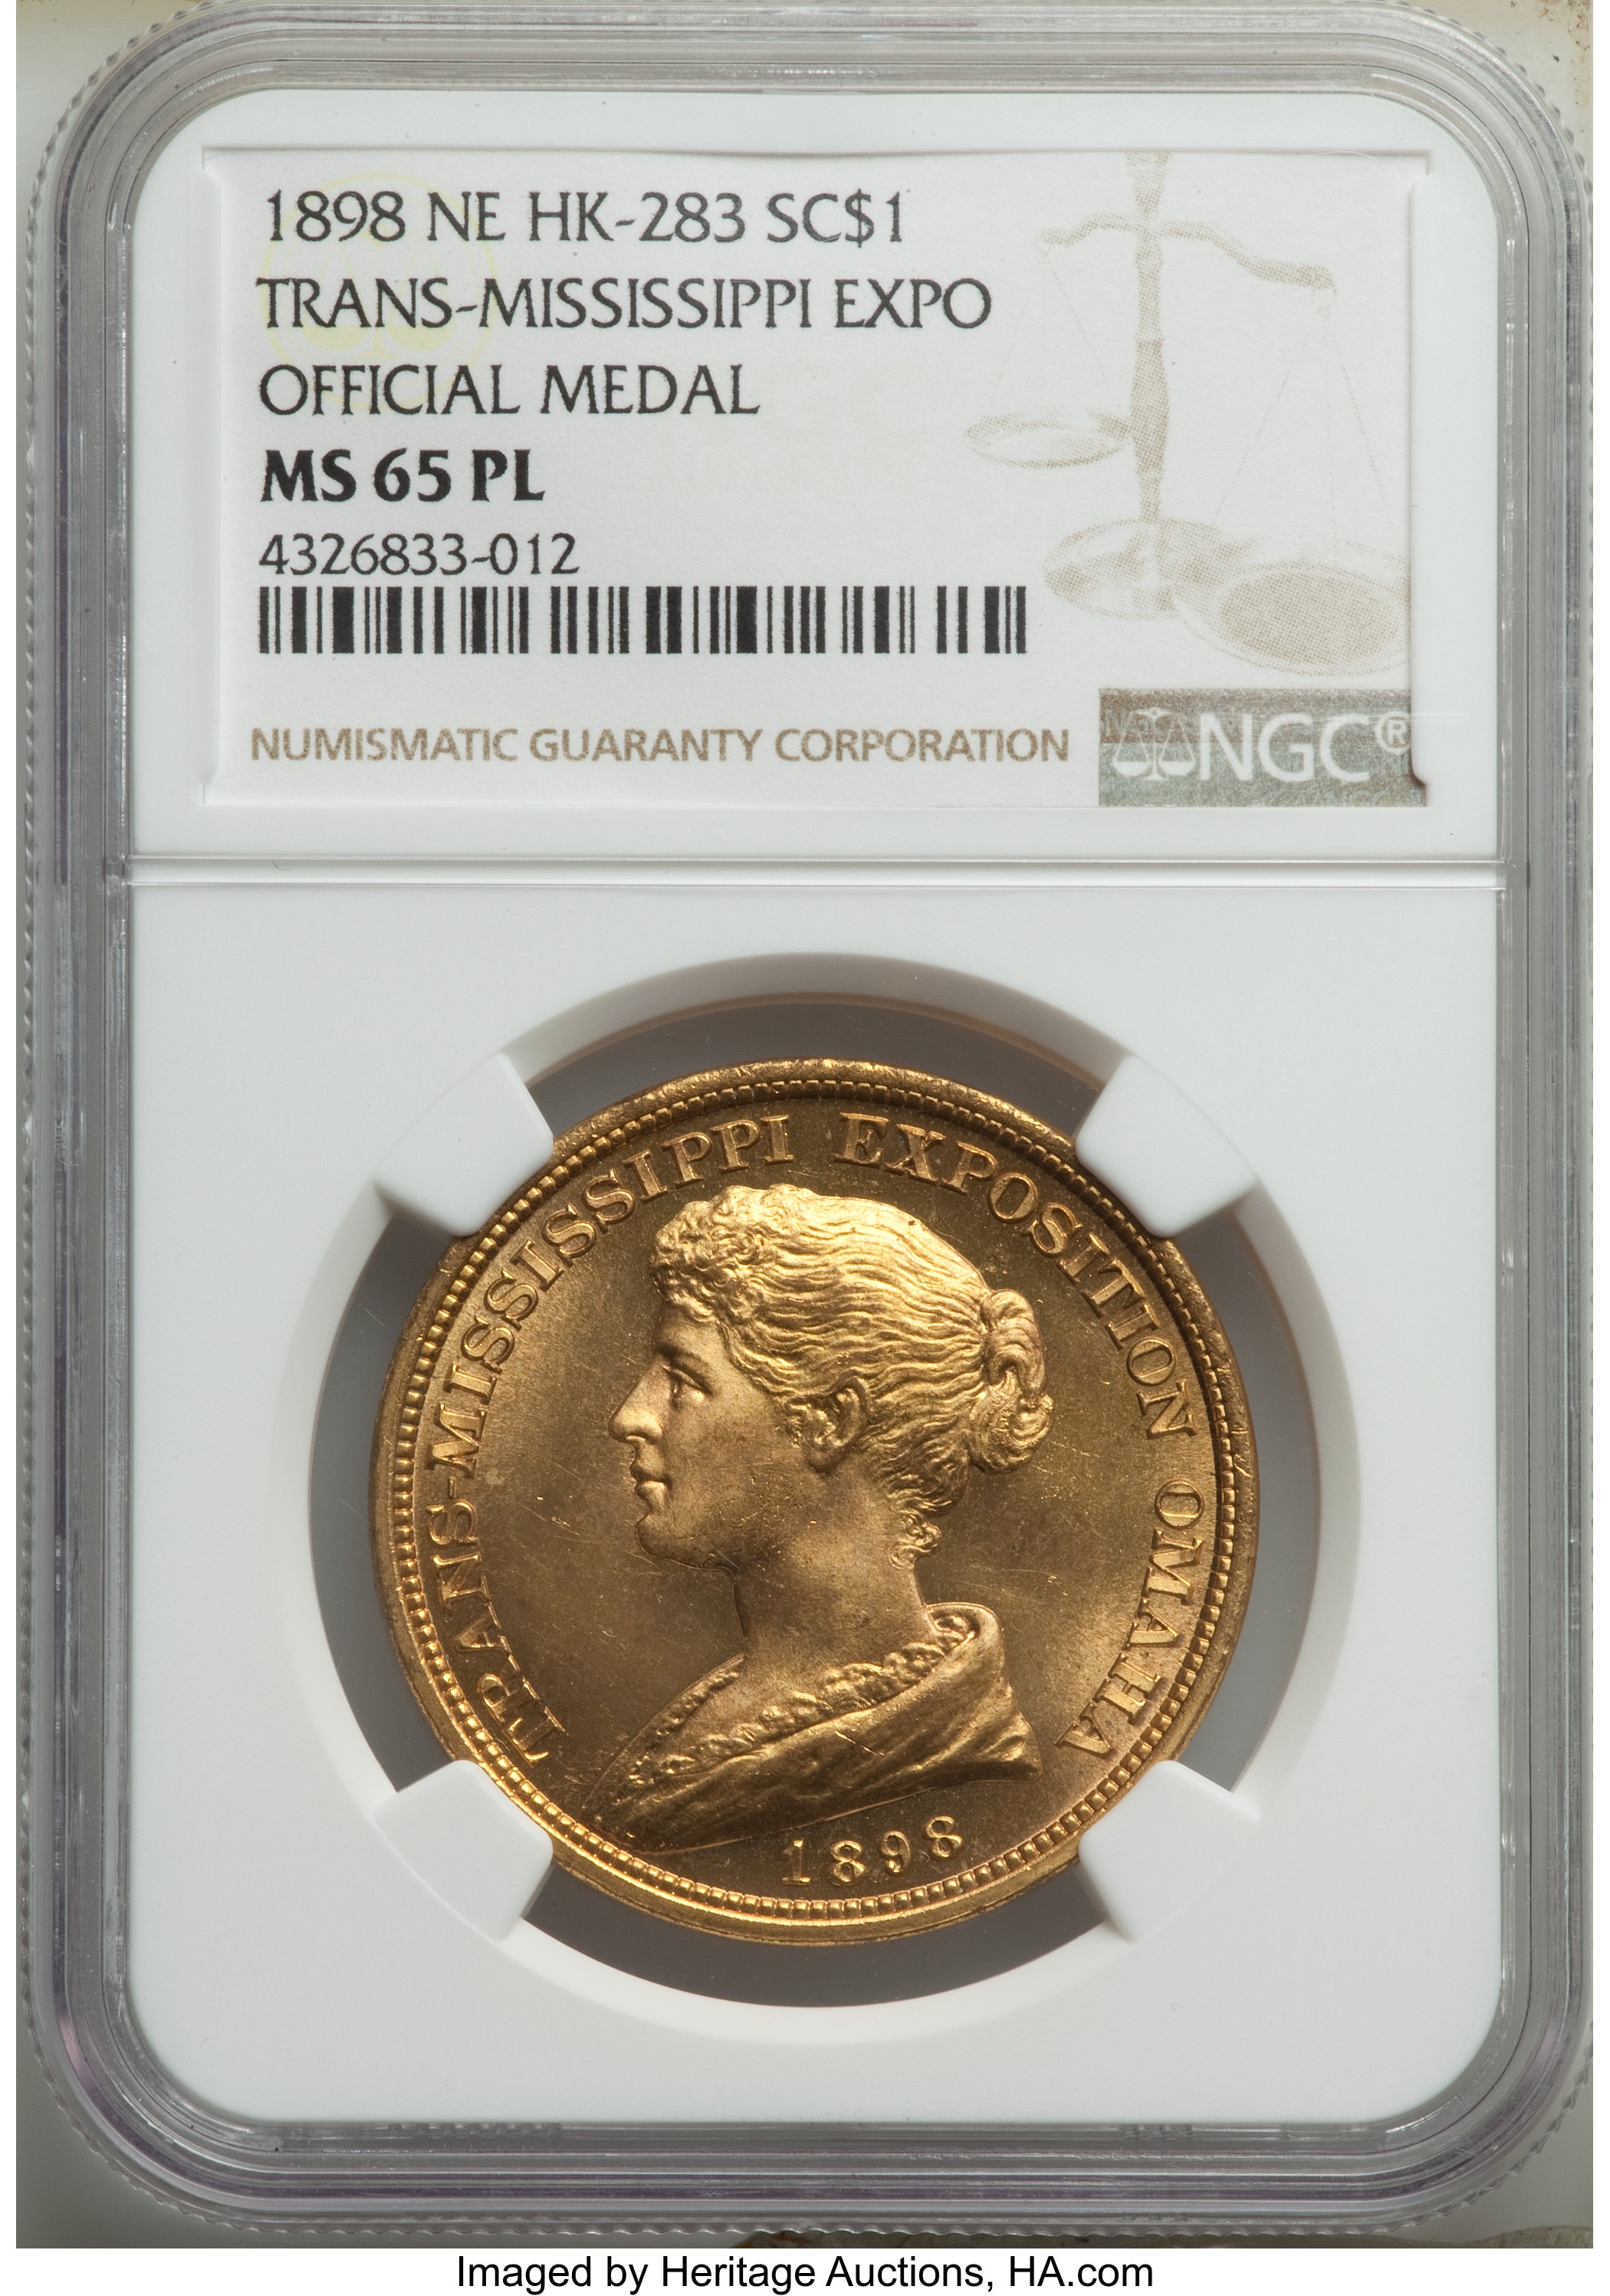 sample image for 1898 Trans Miss Expo, Official, Brass SC$1 MS (HK-283)